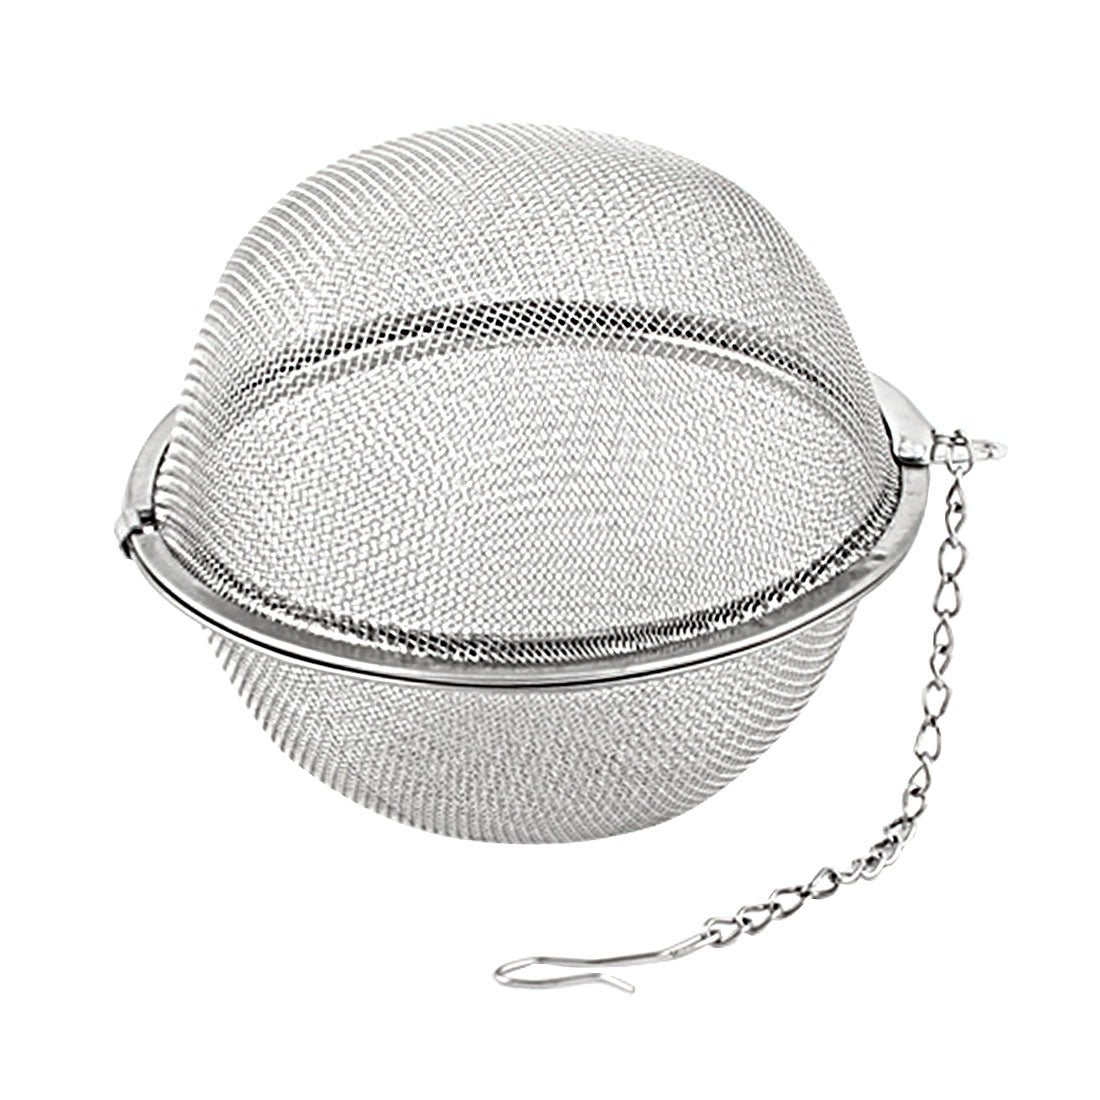 Aiasiry Stainless Steel Mesh Tea Strainer Tea Spacer Diffuser Tea Set Filter,Silver